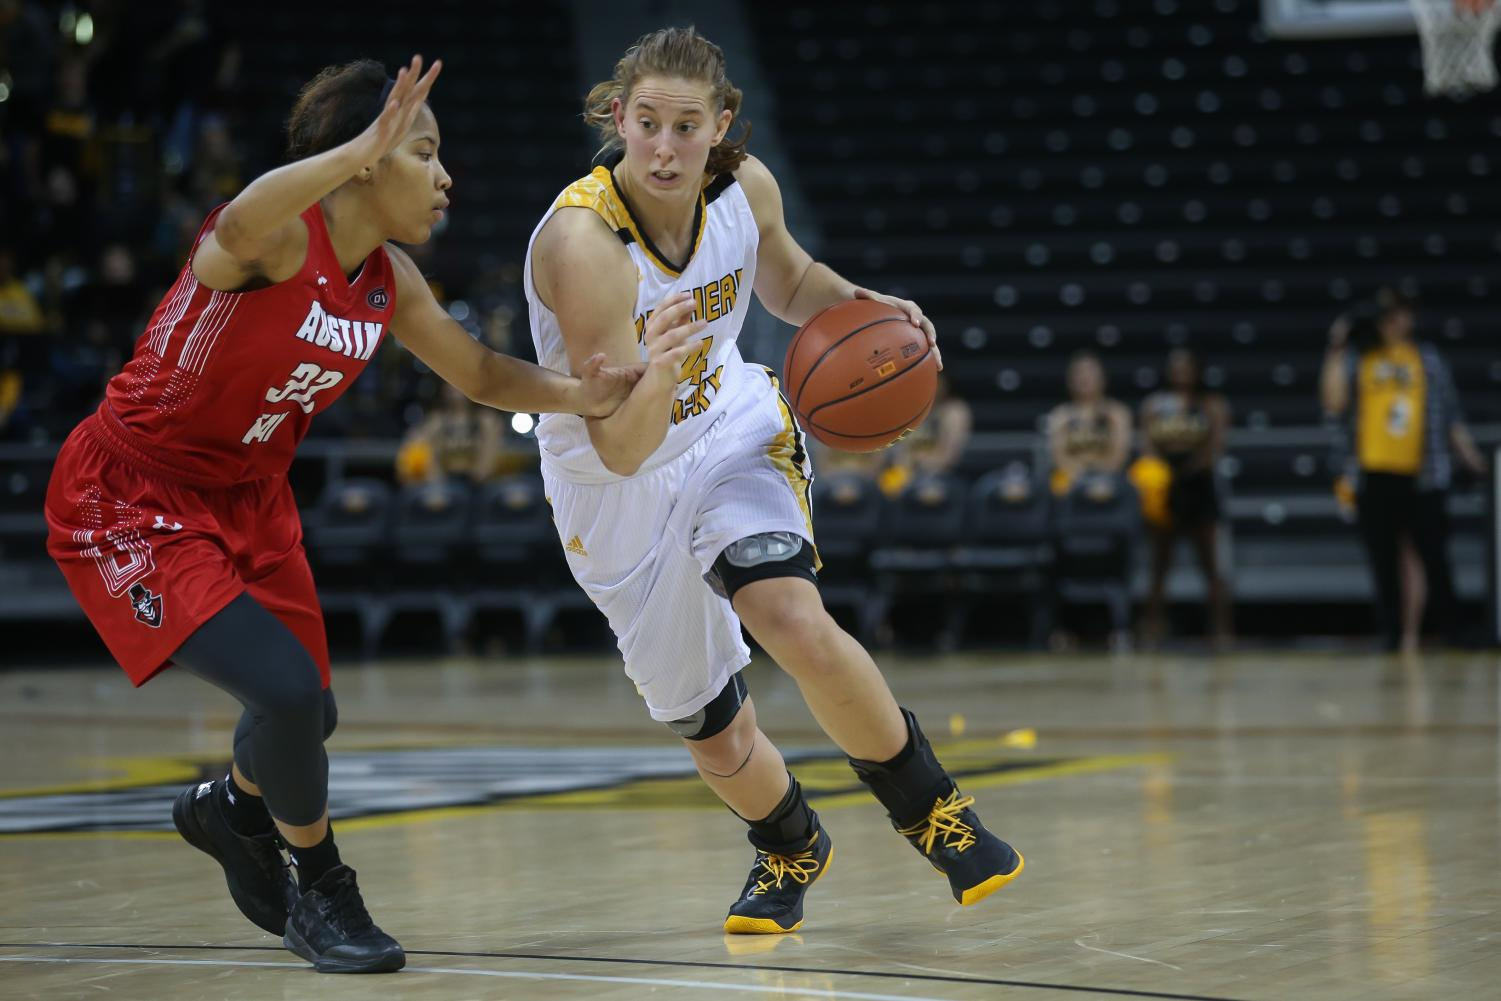 Molly Glick (24) drives toward the basket in the game against  Austin Peay.